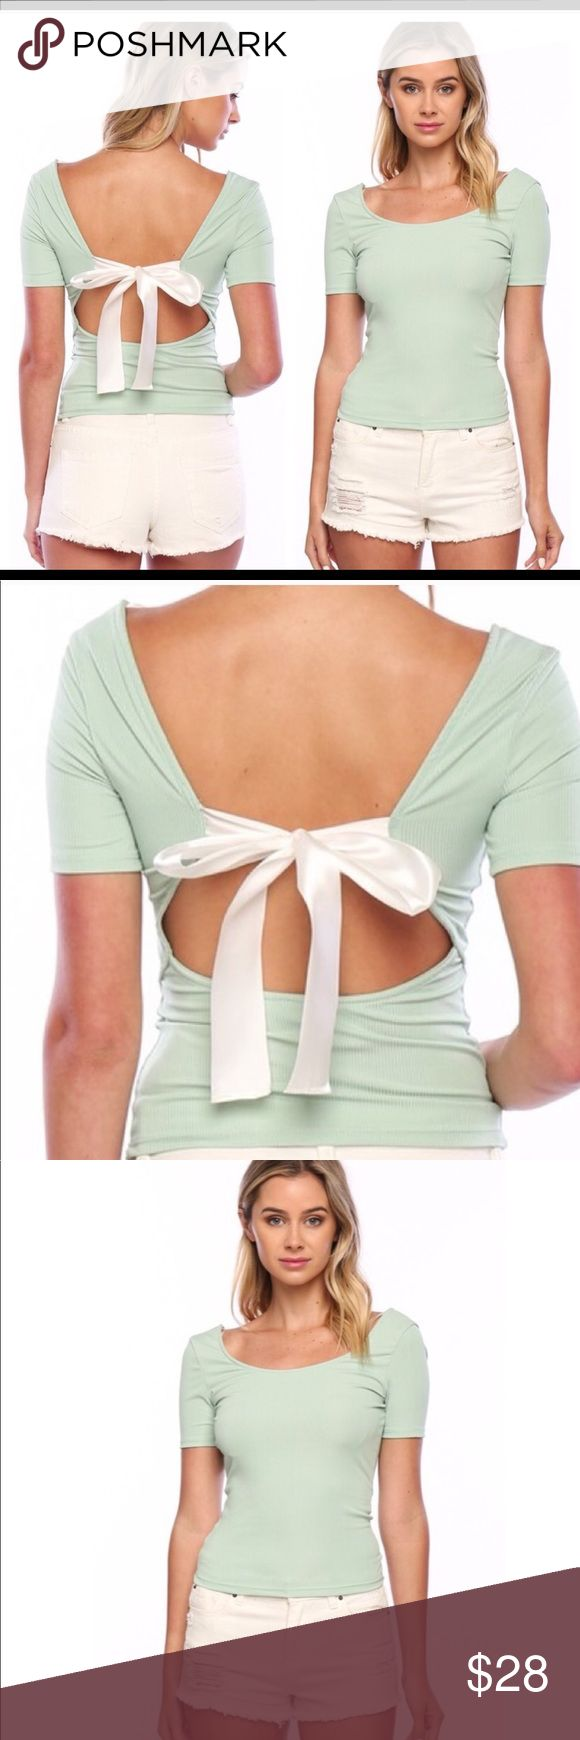 Super cute open back with Bow Top Brand new mint colored top with open back and now tie.  So cute and unique, but definitely runs small.  Have one small, one medium, and one large. Sugar Punch Couture Tops